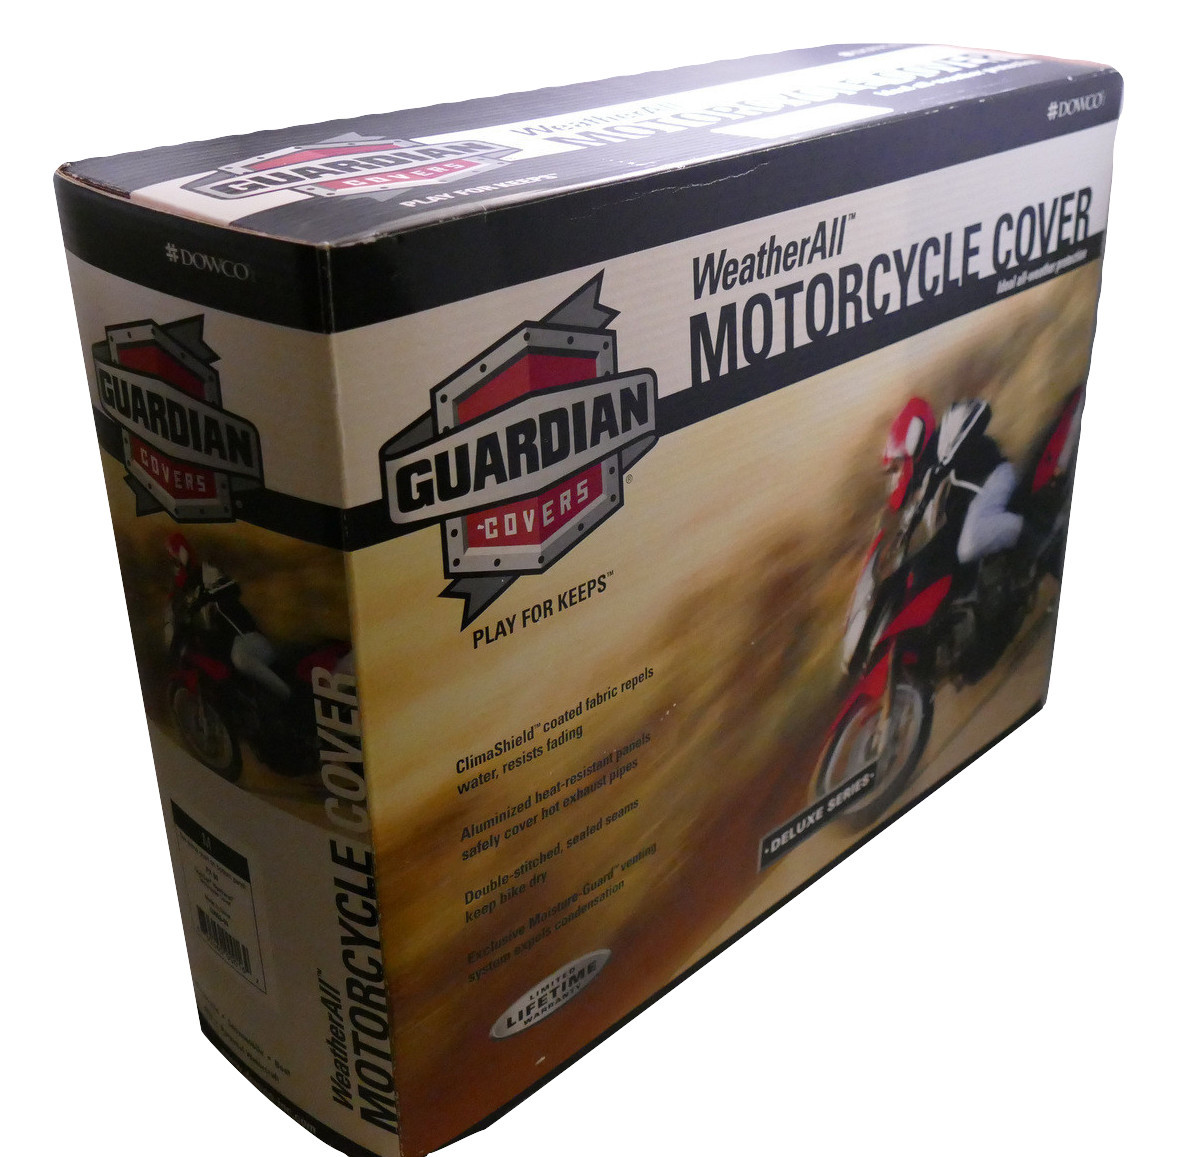 Primary image for NEW Dowco 5000203 Guardian WeatherAll Motorcycle Cover